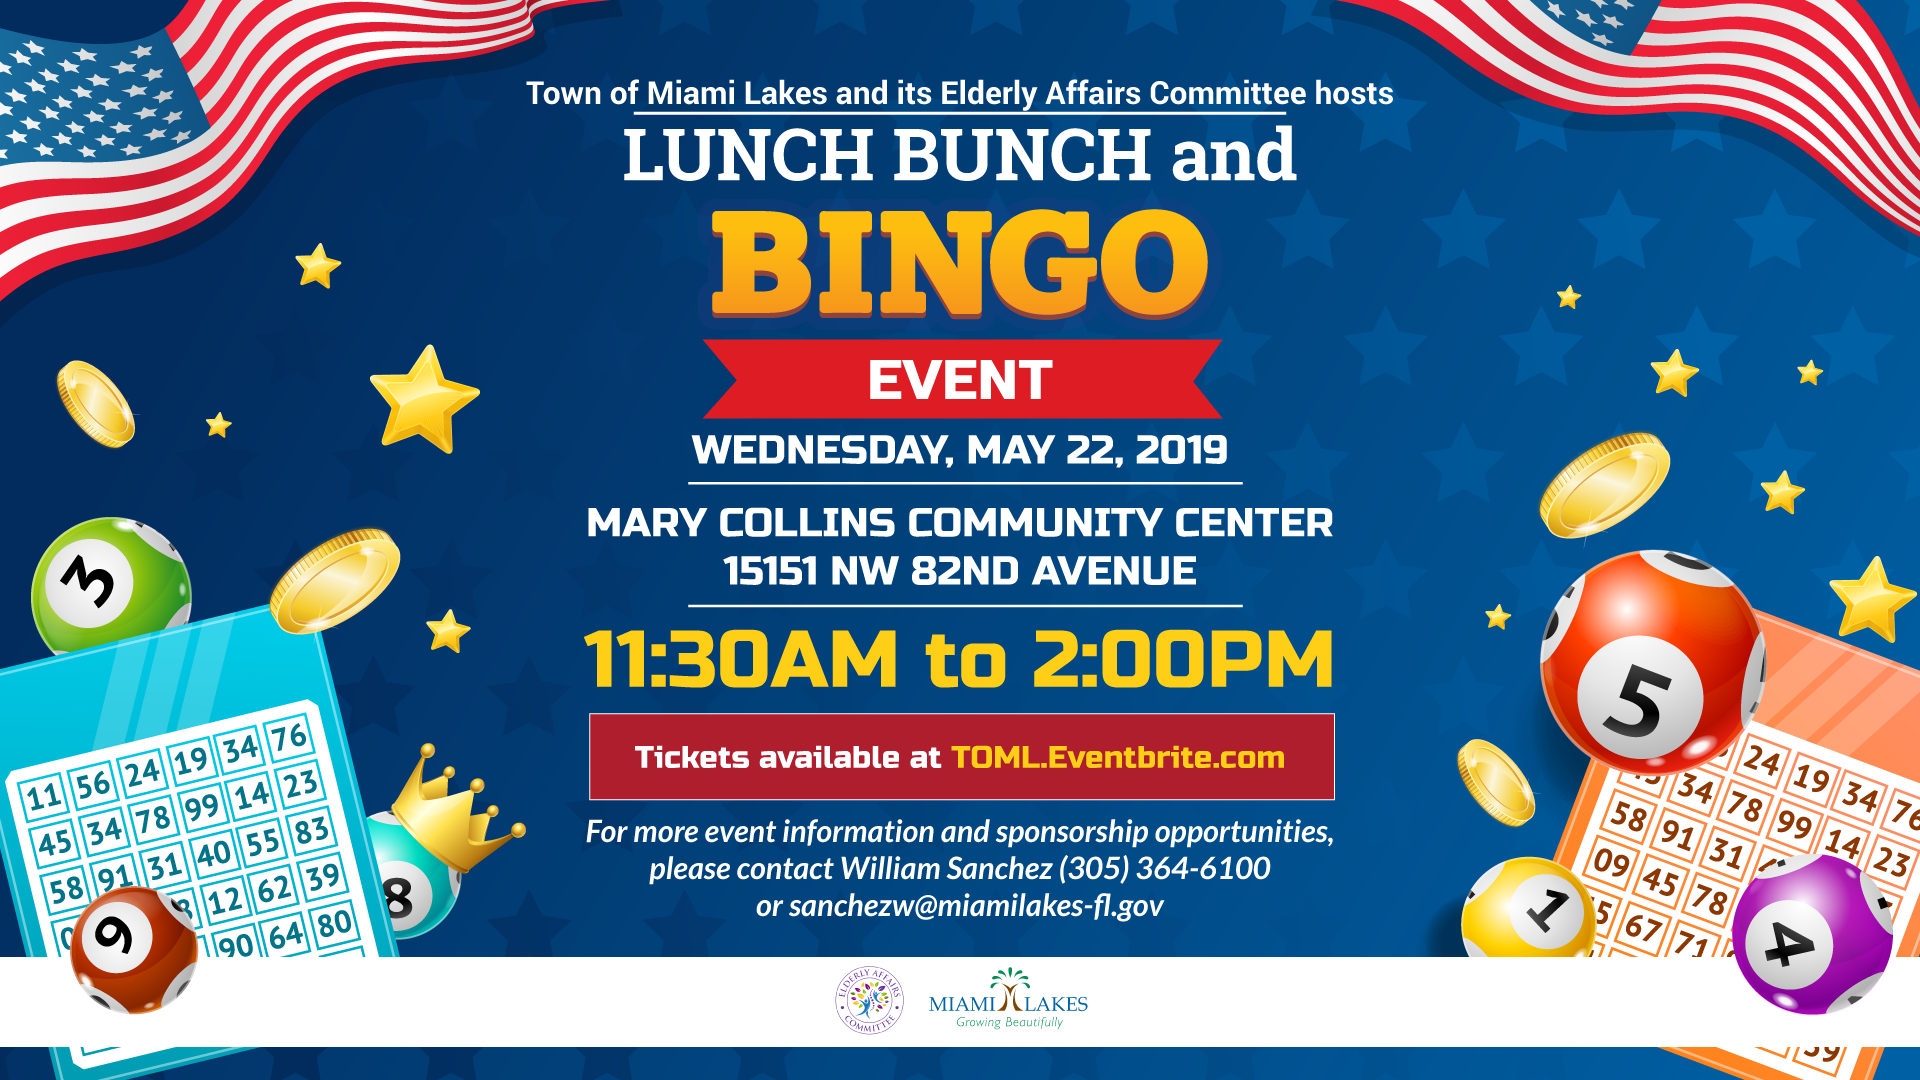 Lunch Bunch Bingo flyer